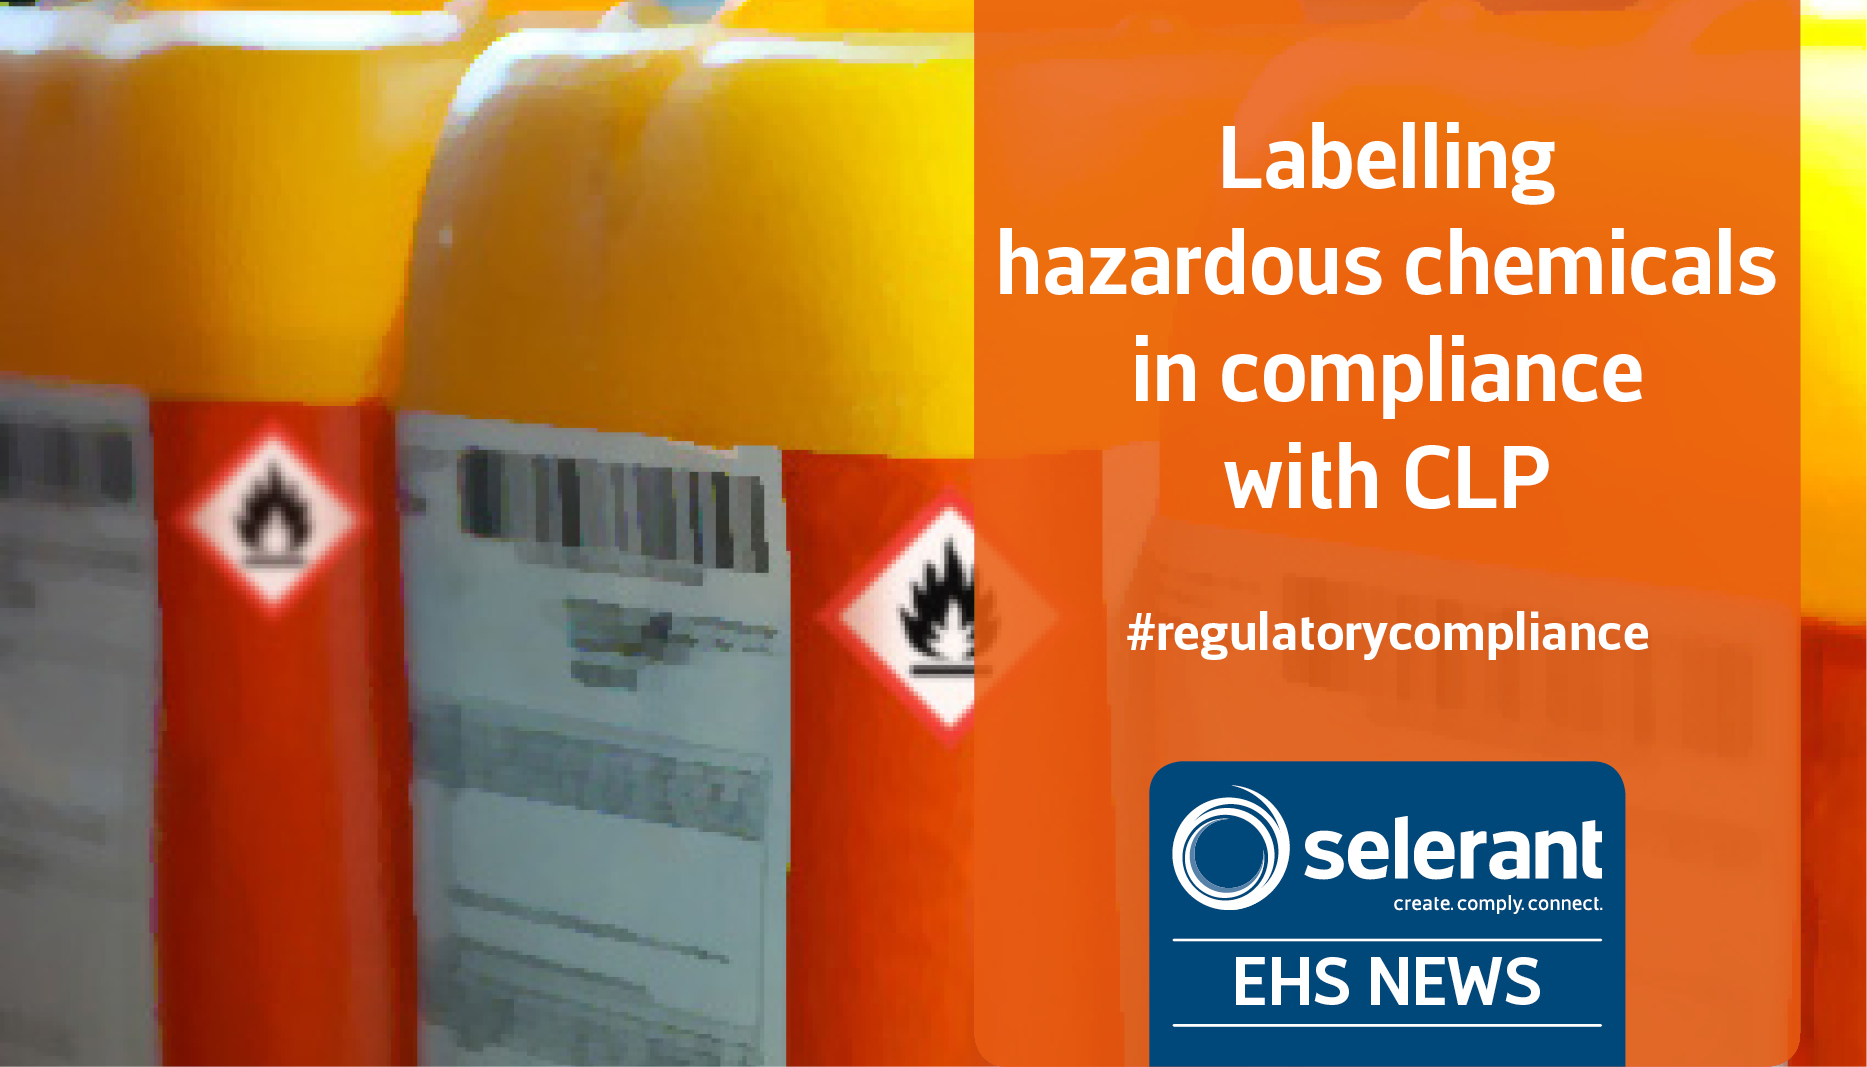 Labelling hazardous chemicals in compliance with CLP